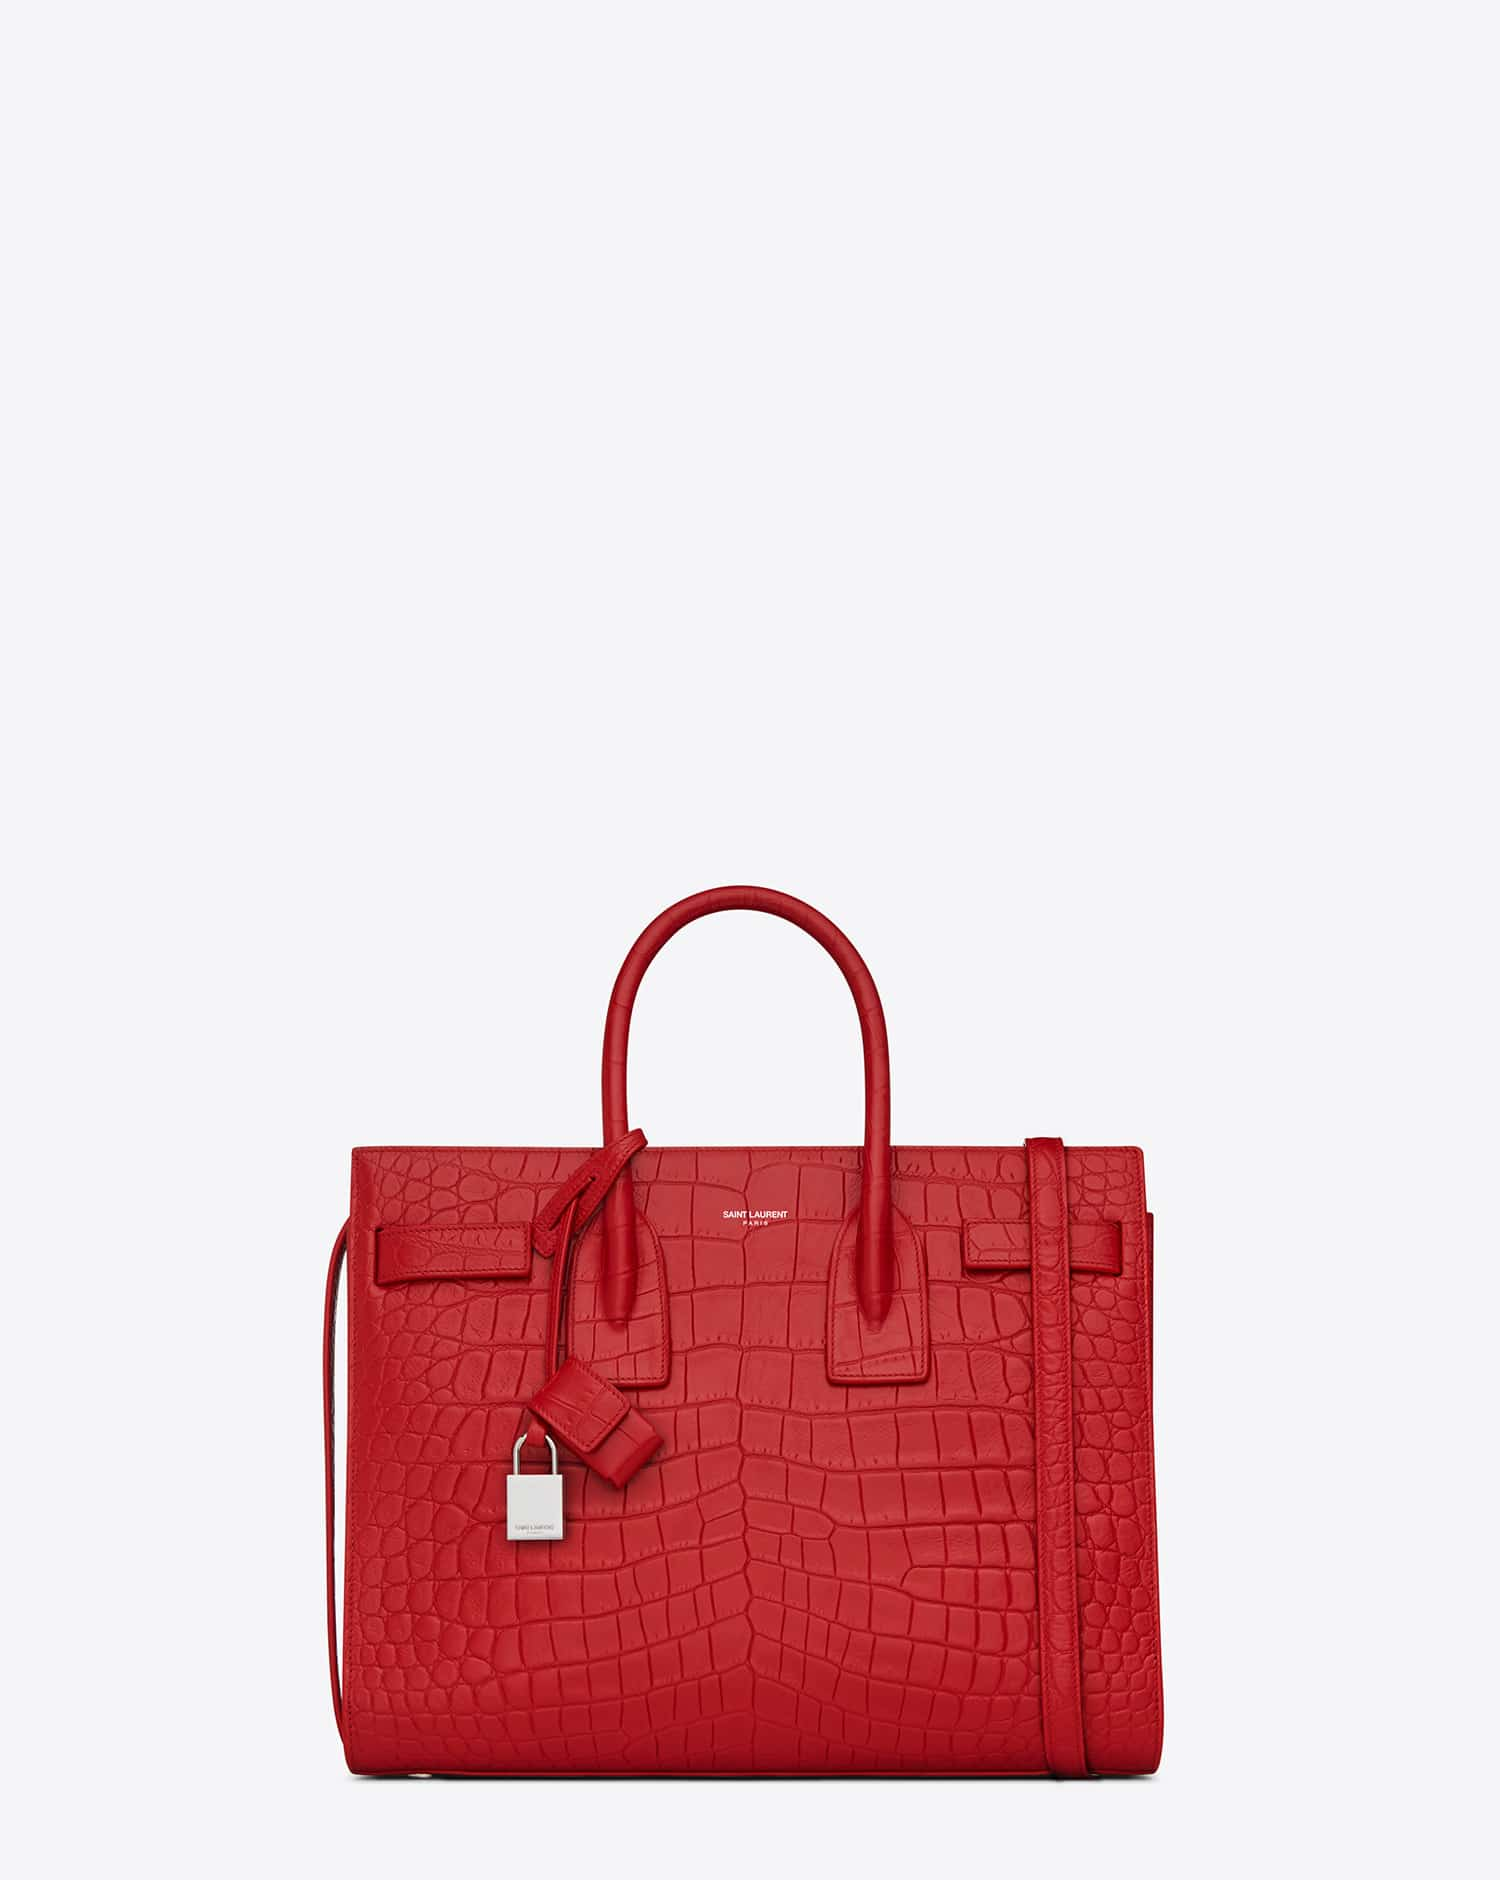 Saint Laurent Fall/Winter 2015 Bag Collection Featuring ...